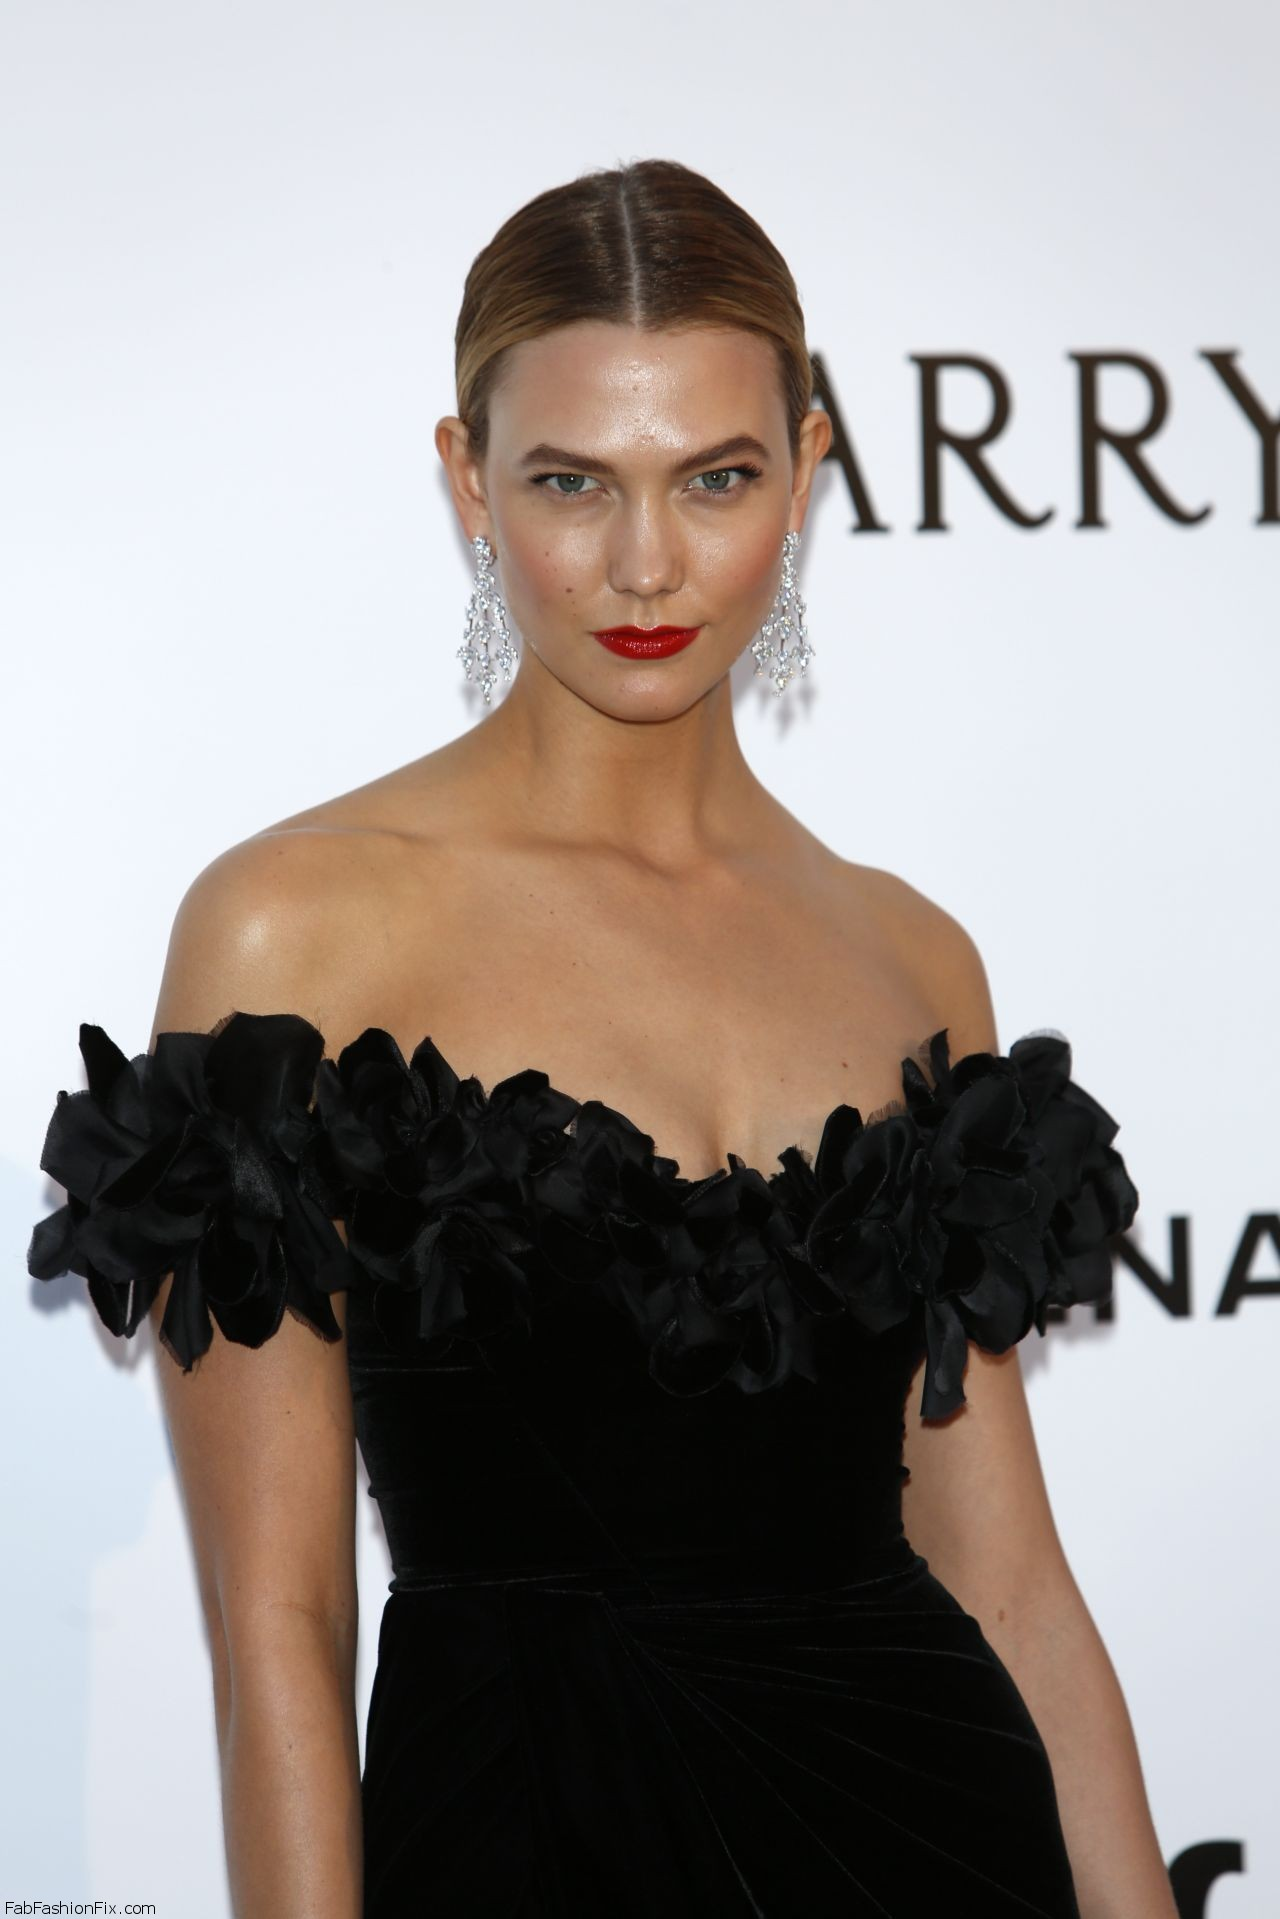 karlie-kloss-amfar-s-cinema-against-aids-gala-in-cap-d-antibes-france-5-19-2016-2